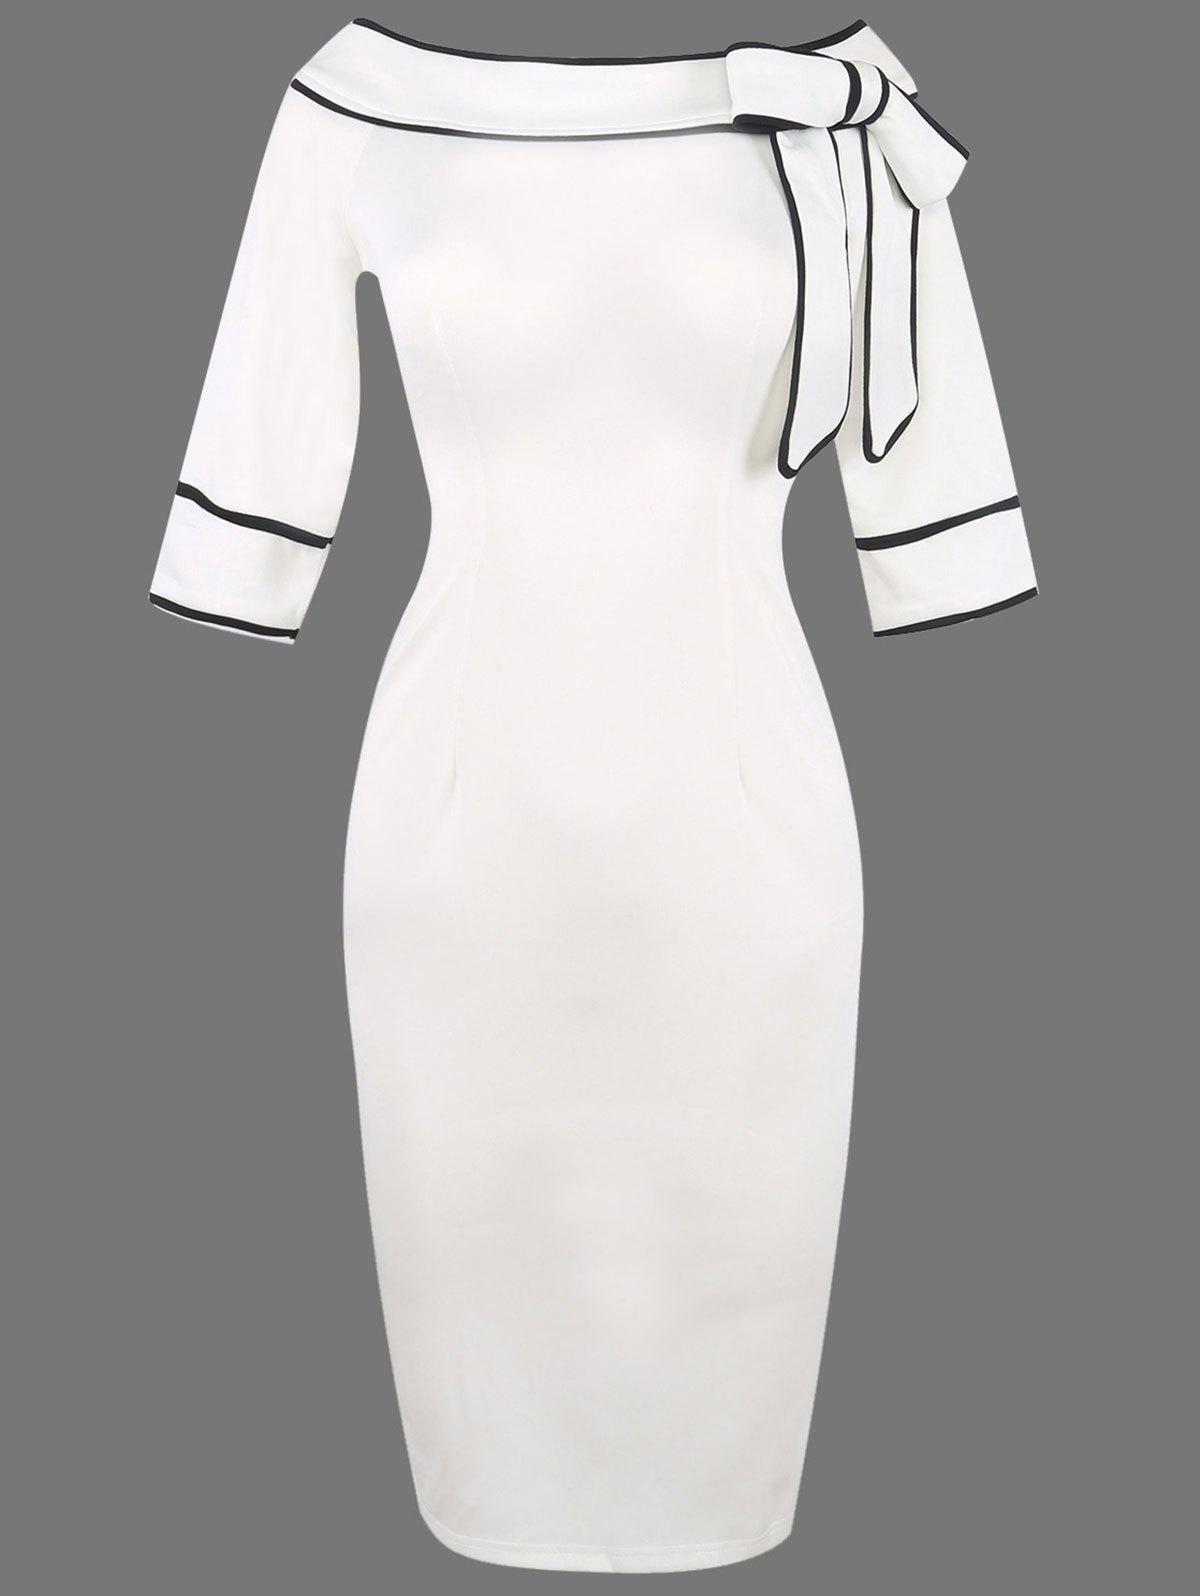 Boat Neck Bowknot Embellished Bodycon DressWOMEN<br><br>Size: 2XL; Color: WHITE; Style: Brief; Material: Polyester; Silhouette: Bodycon; Dresses Length: Knee-Length; Neckline: Slash Neck; Sleeve Length: Half Sleeves; Embellishment: Bowknot; Pattern Type: Others; With Belt: No; Season: Summer; Weight: 0.4000kg; Package Contents: 1 x Dress;